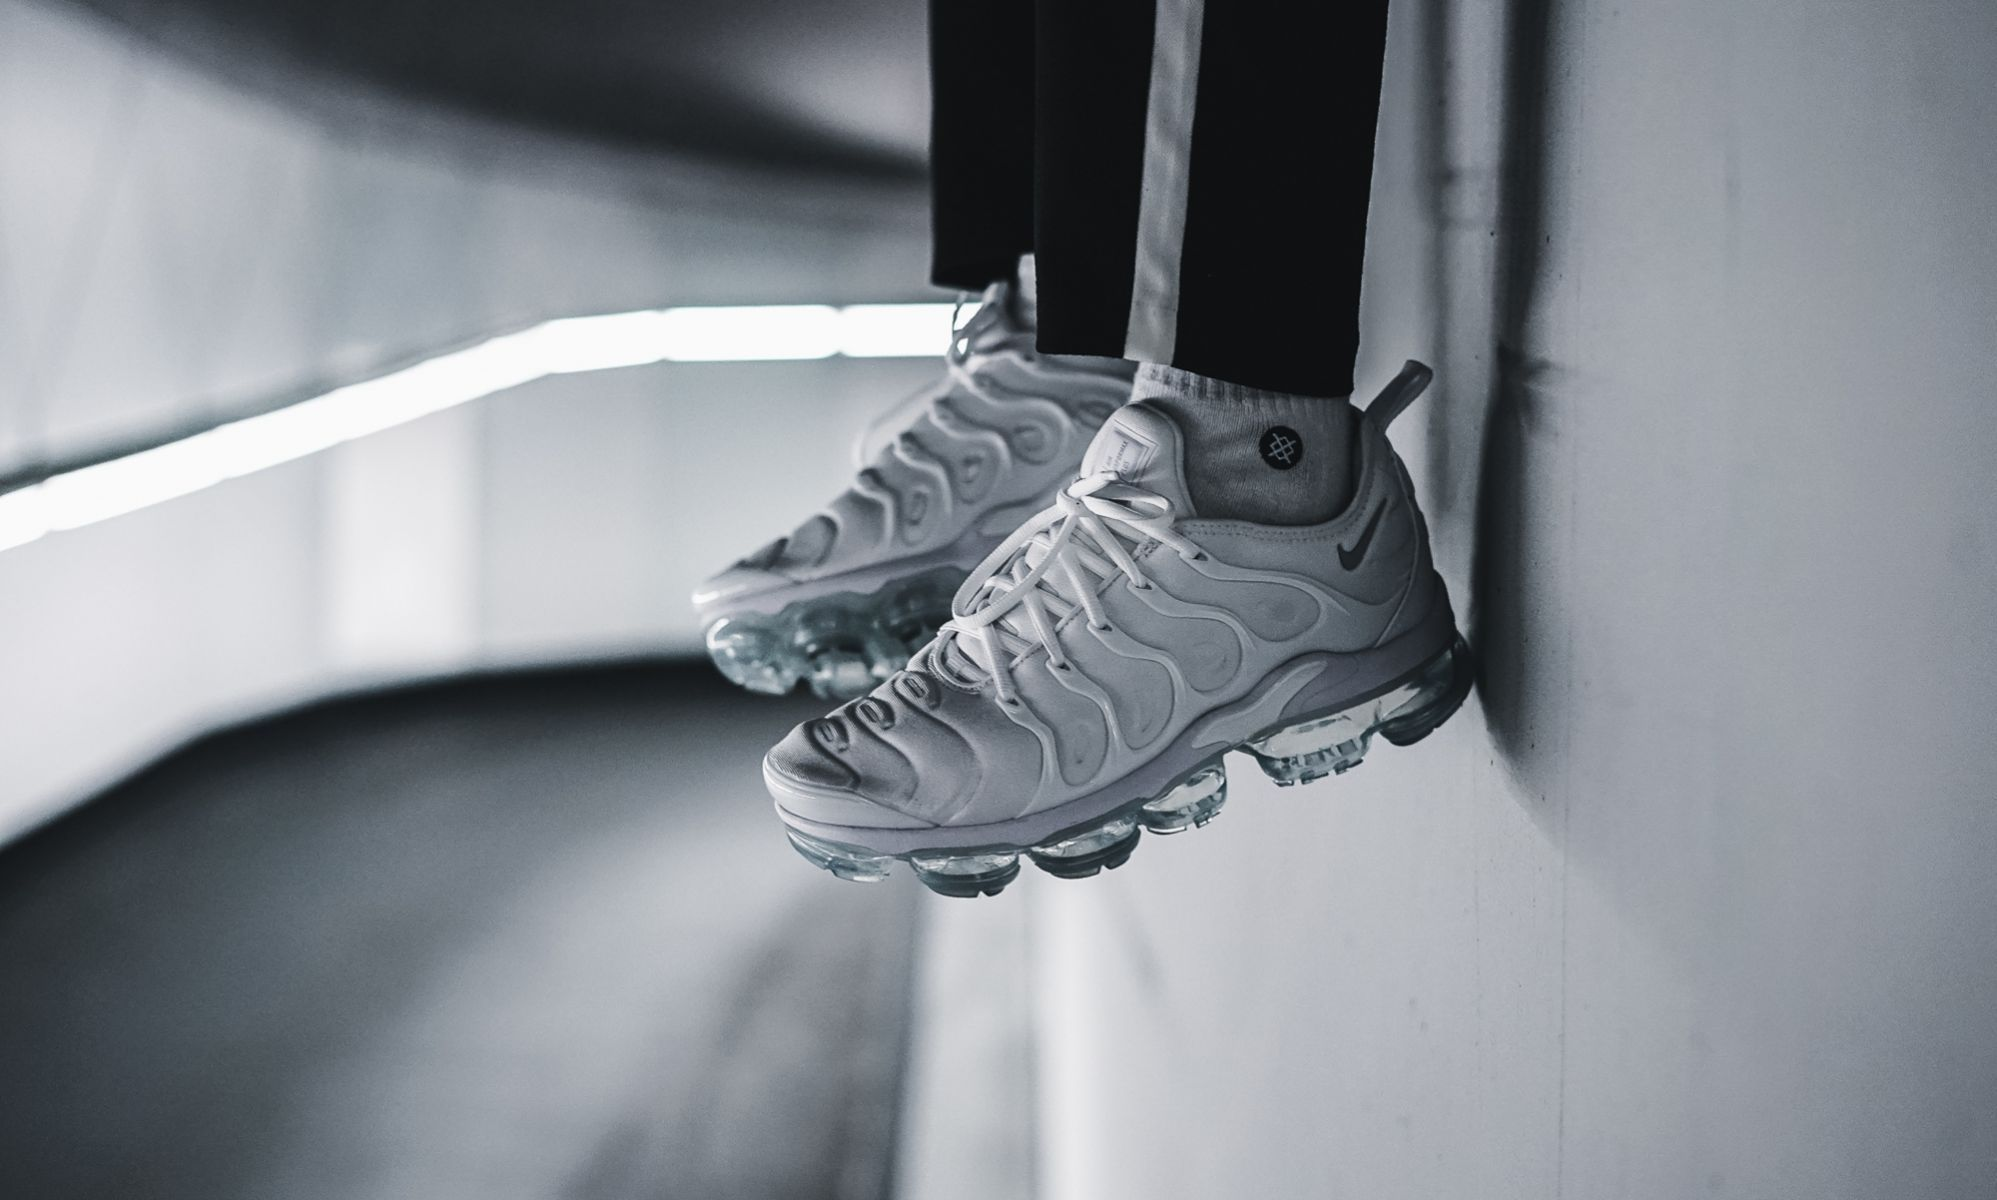 96005524f1 Nike Air Vapormax Plus -Triple White (924453-100) USD 220 HKD 1720 ...